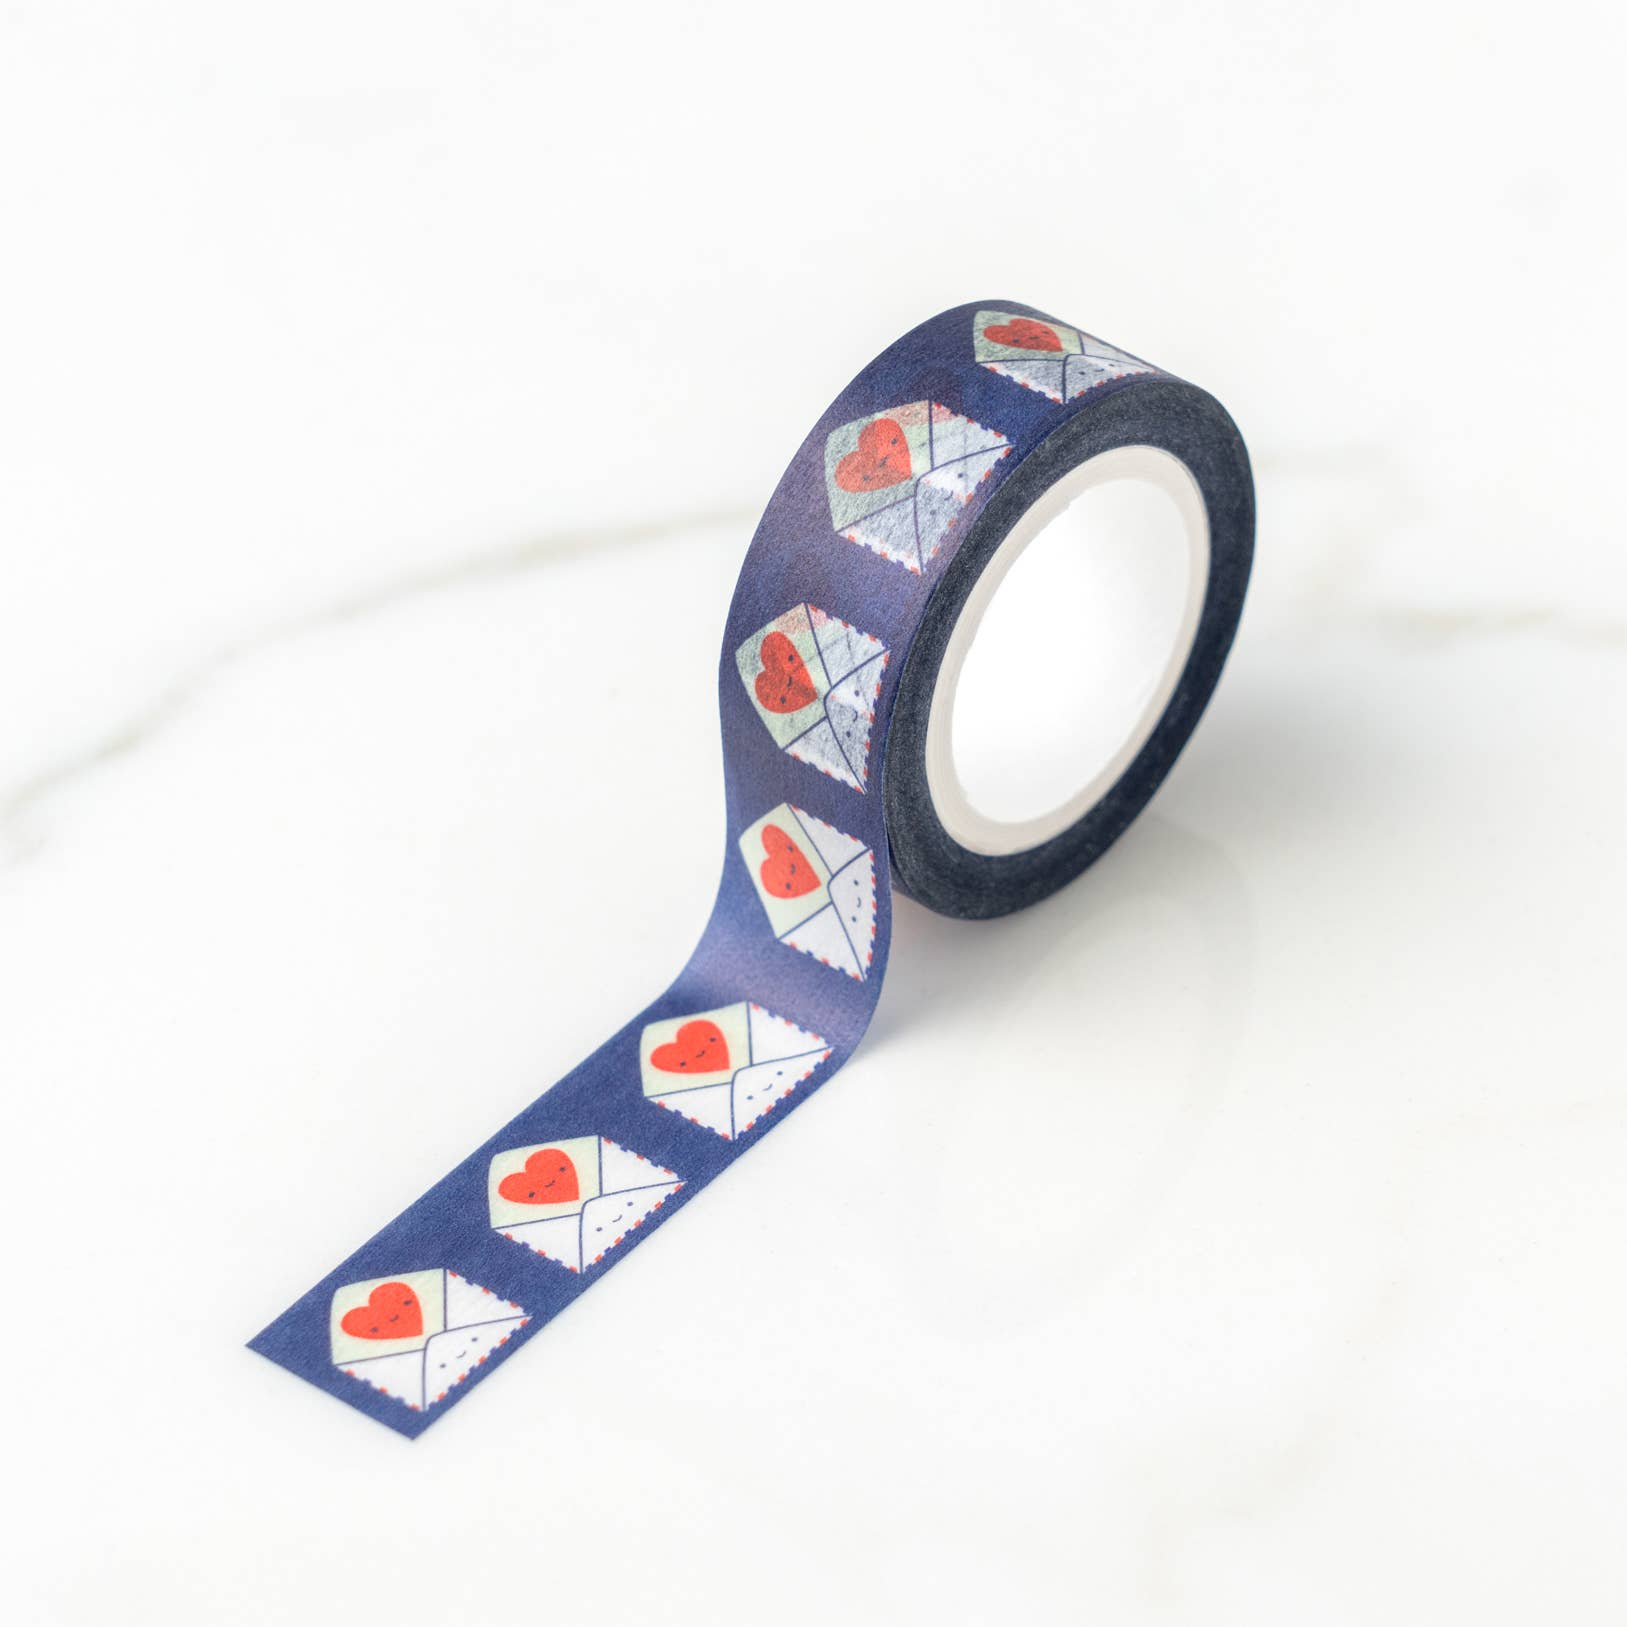 ilootpaperie send love washi tape, dark blue with white envelope and red heart motif